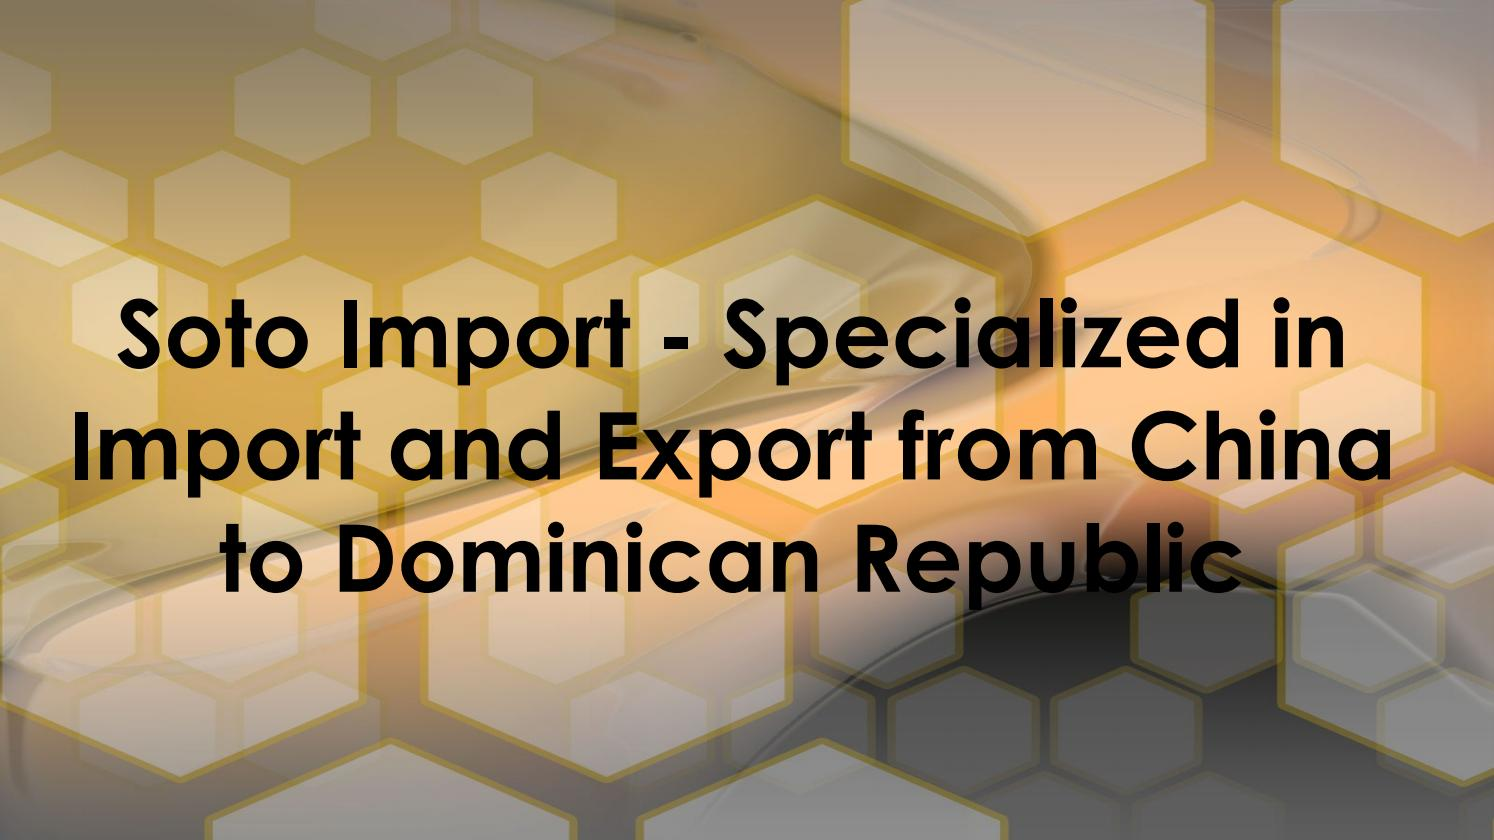 Soto import specialized in import and export from china to